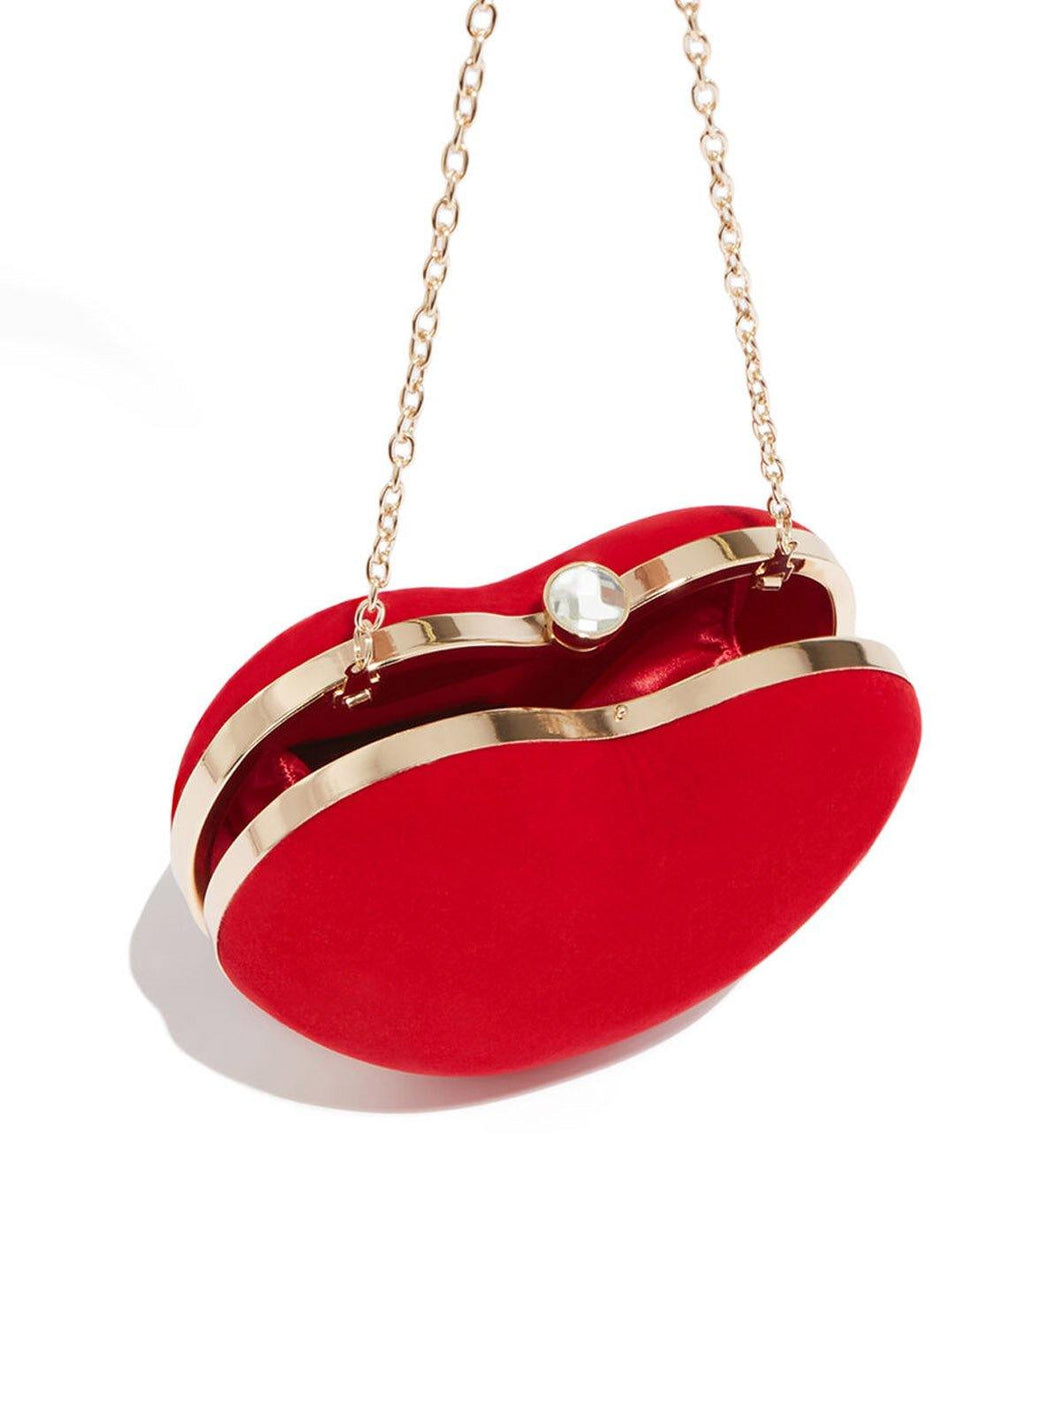 Red Heart Shaped Clutch